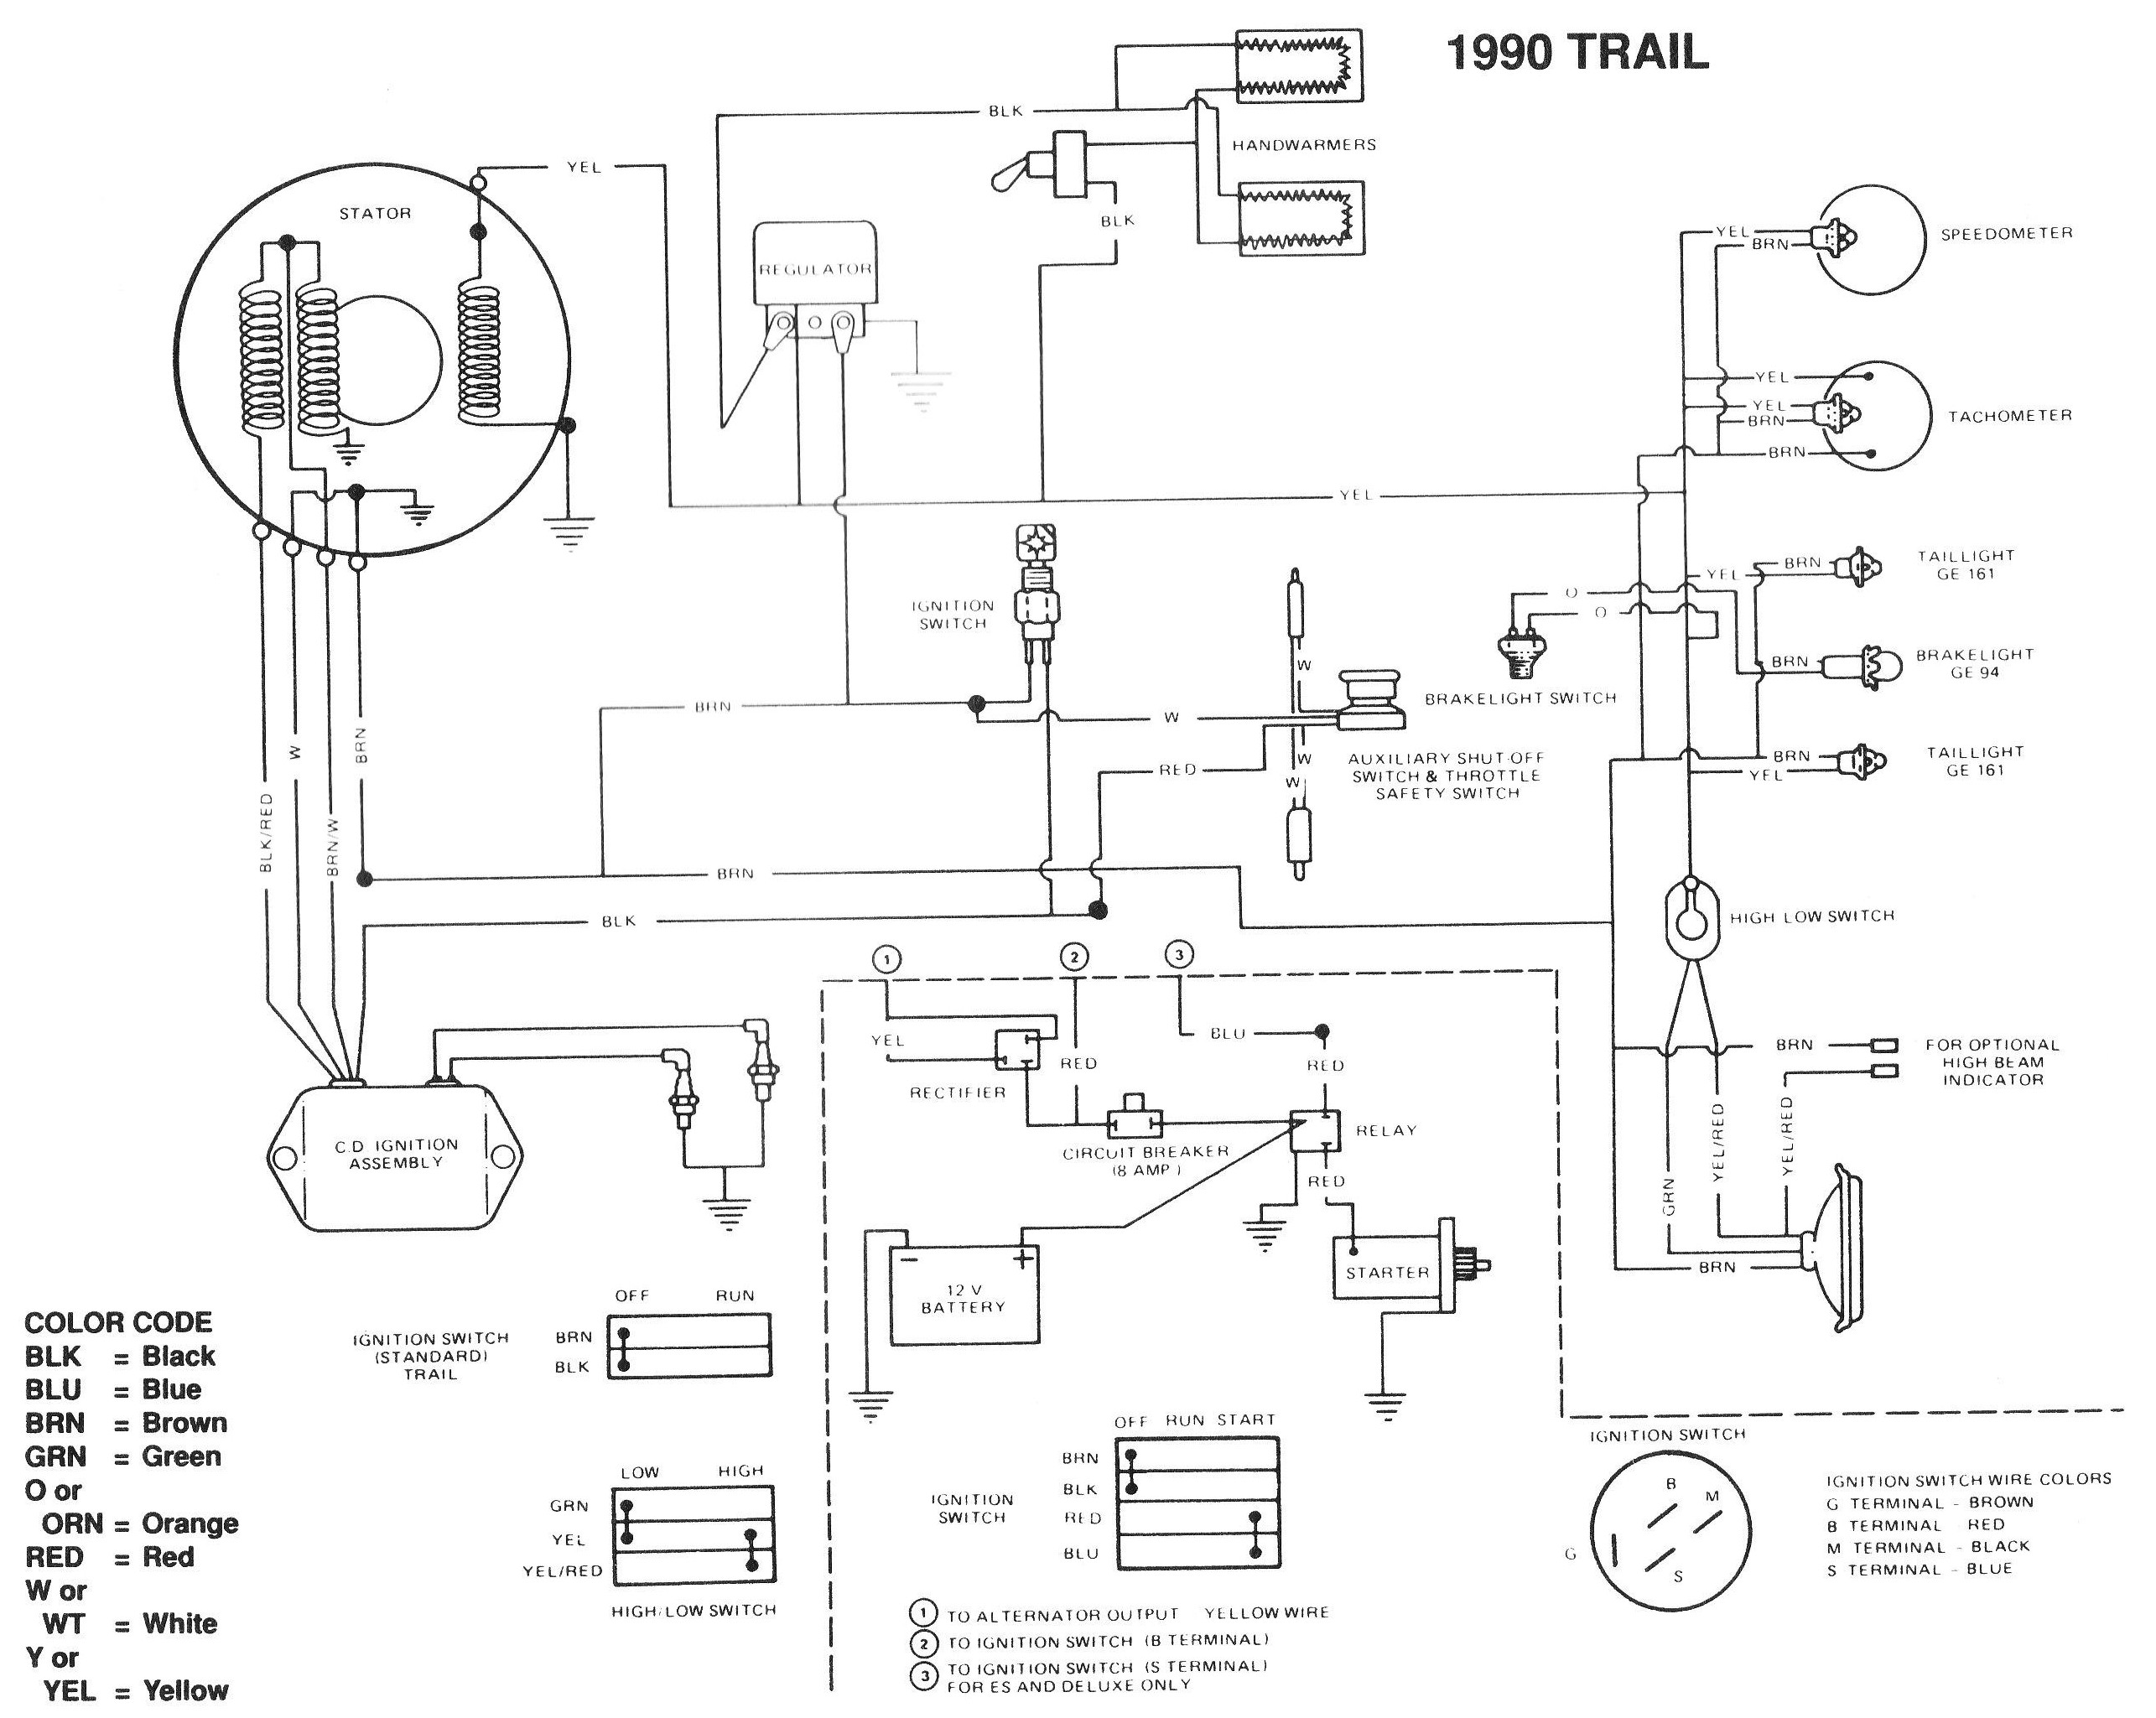 174516 indy trail 488 fan wire diagram 201021122712567_31875 indy trail 488 fan wire diagram polaris wiring schematic at bakdesigns.co